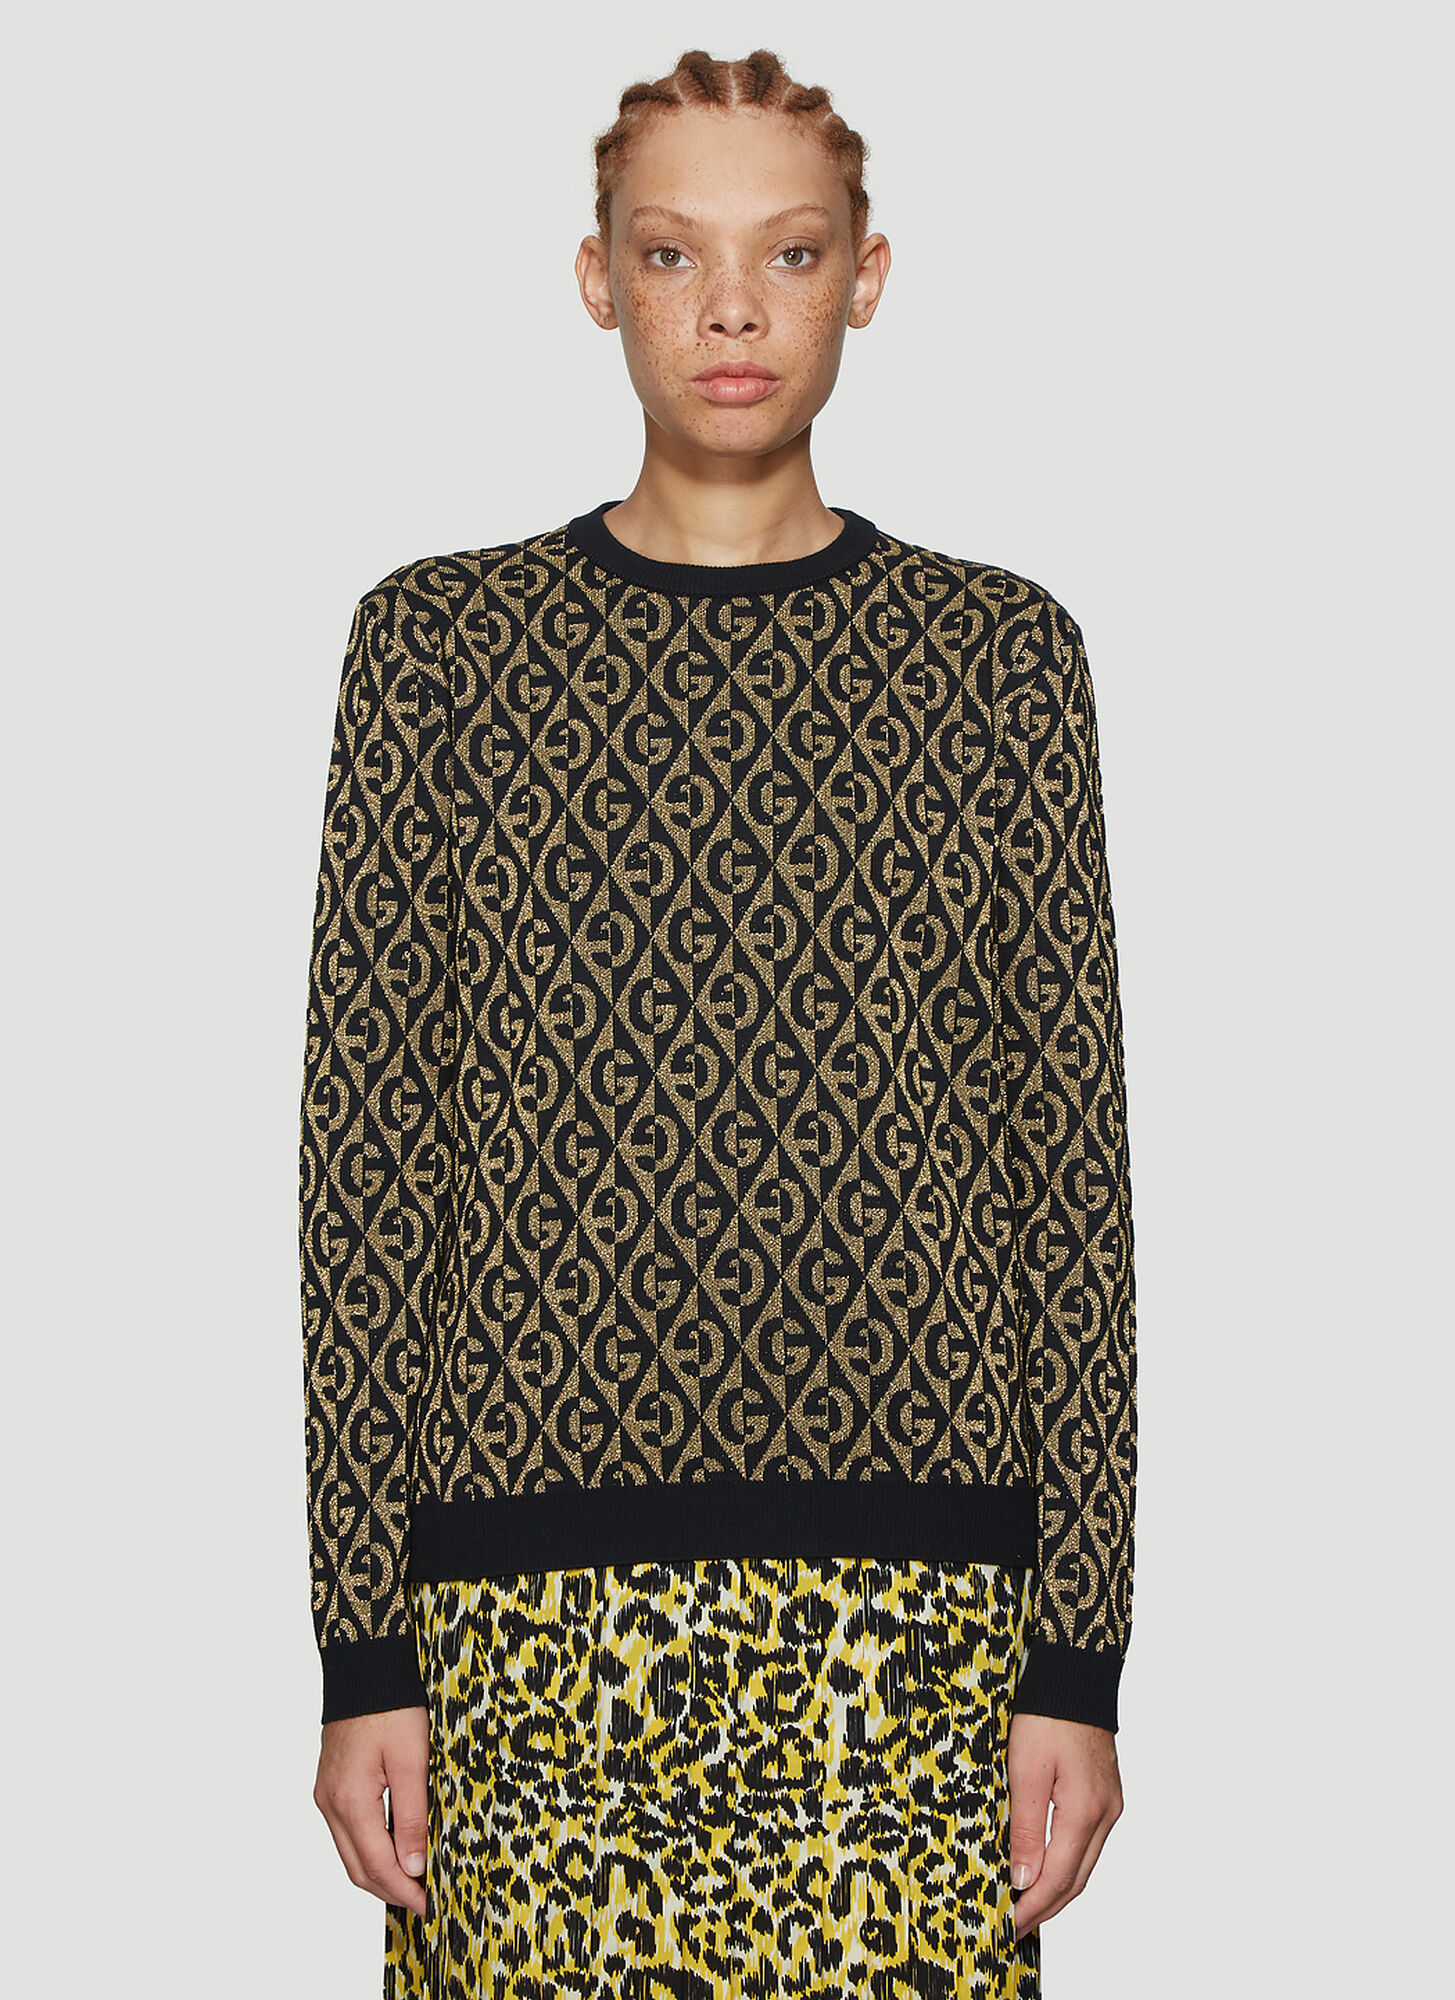 Gucci Metallic Knit Sweater in Black